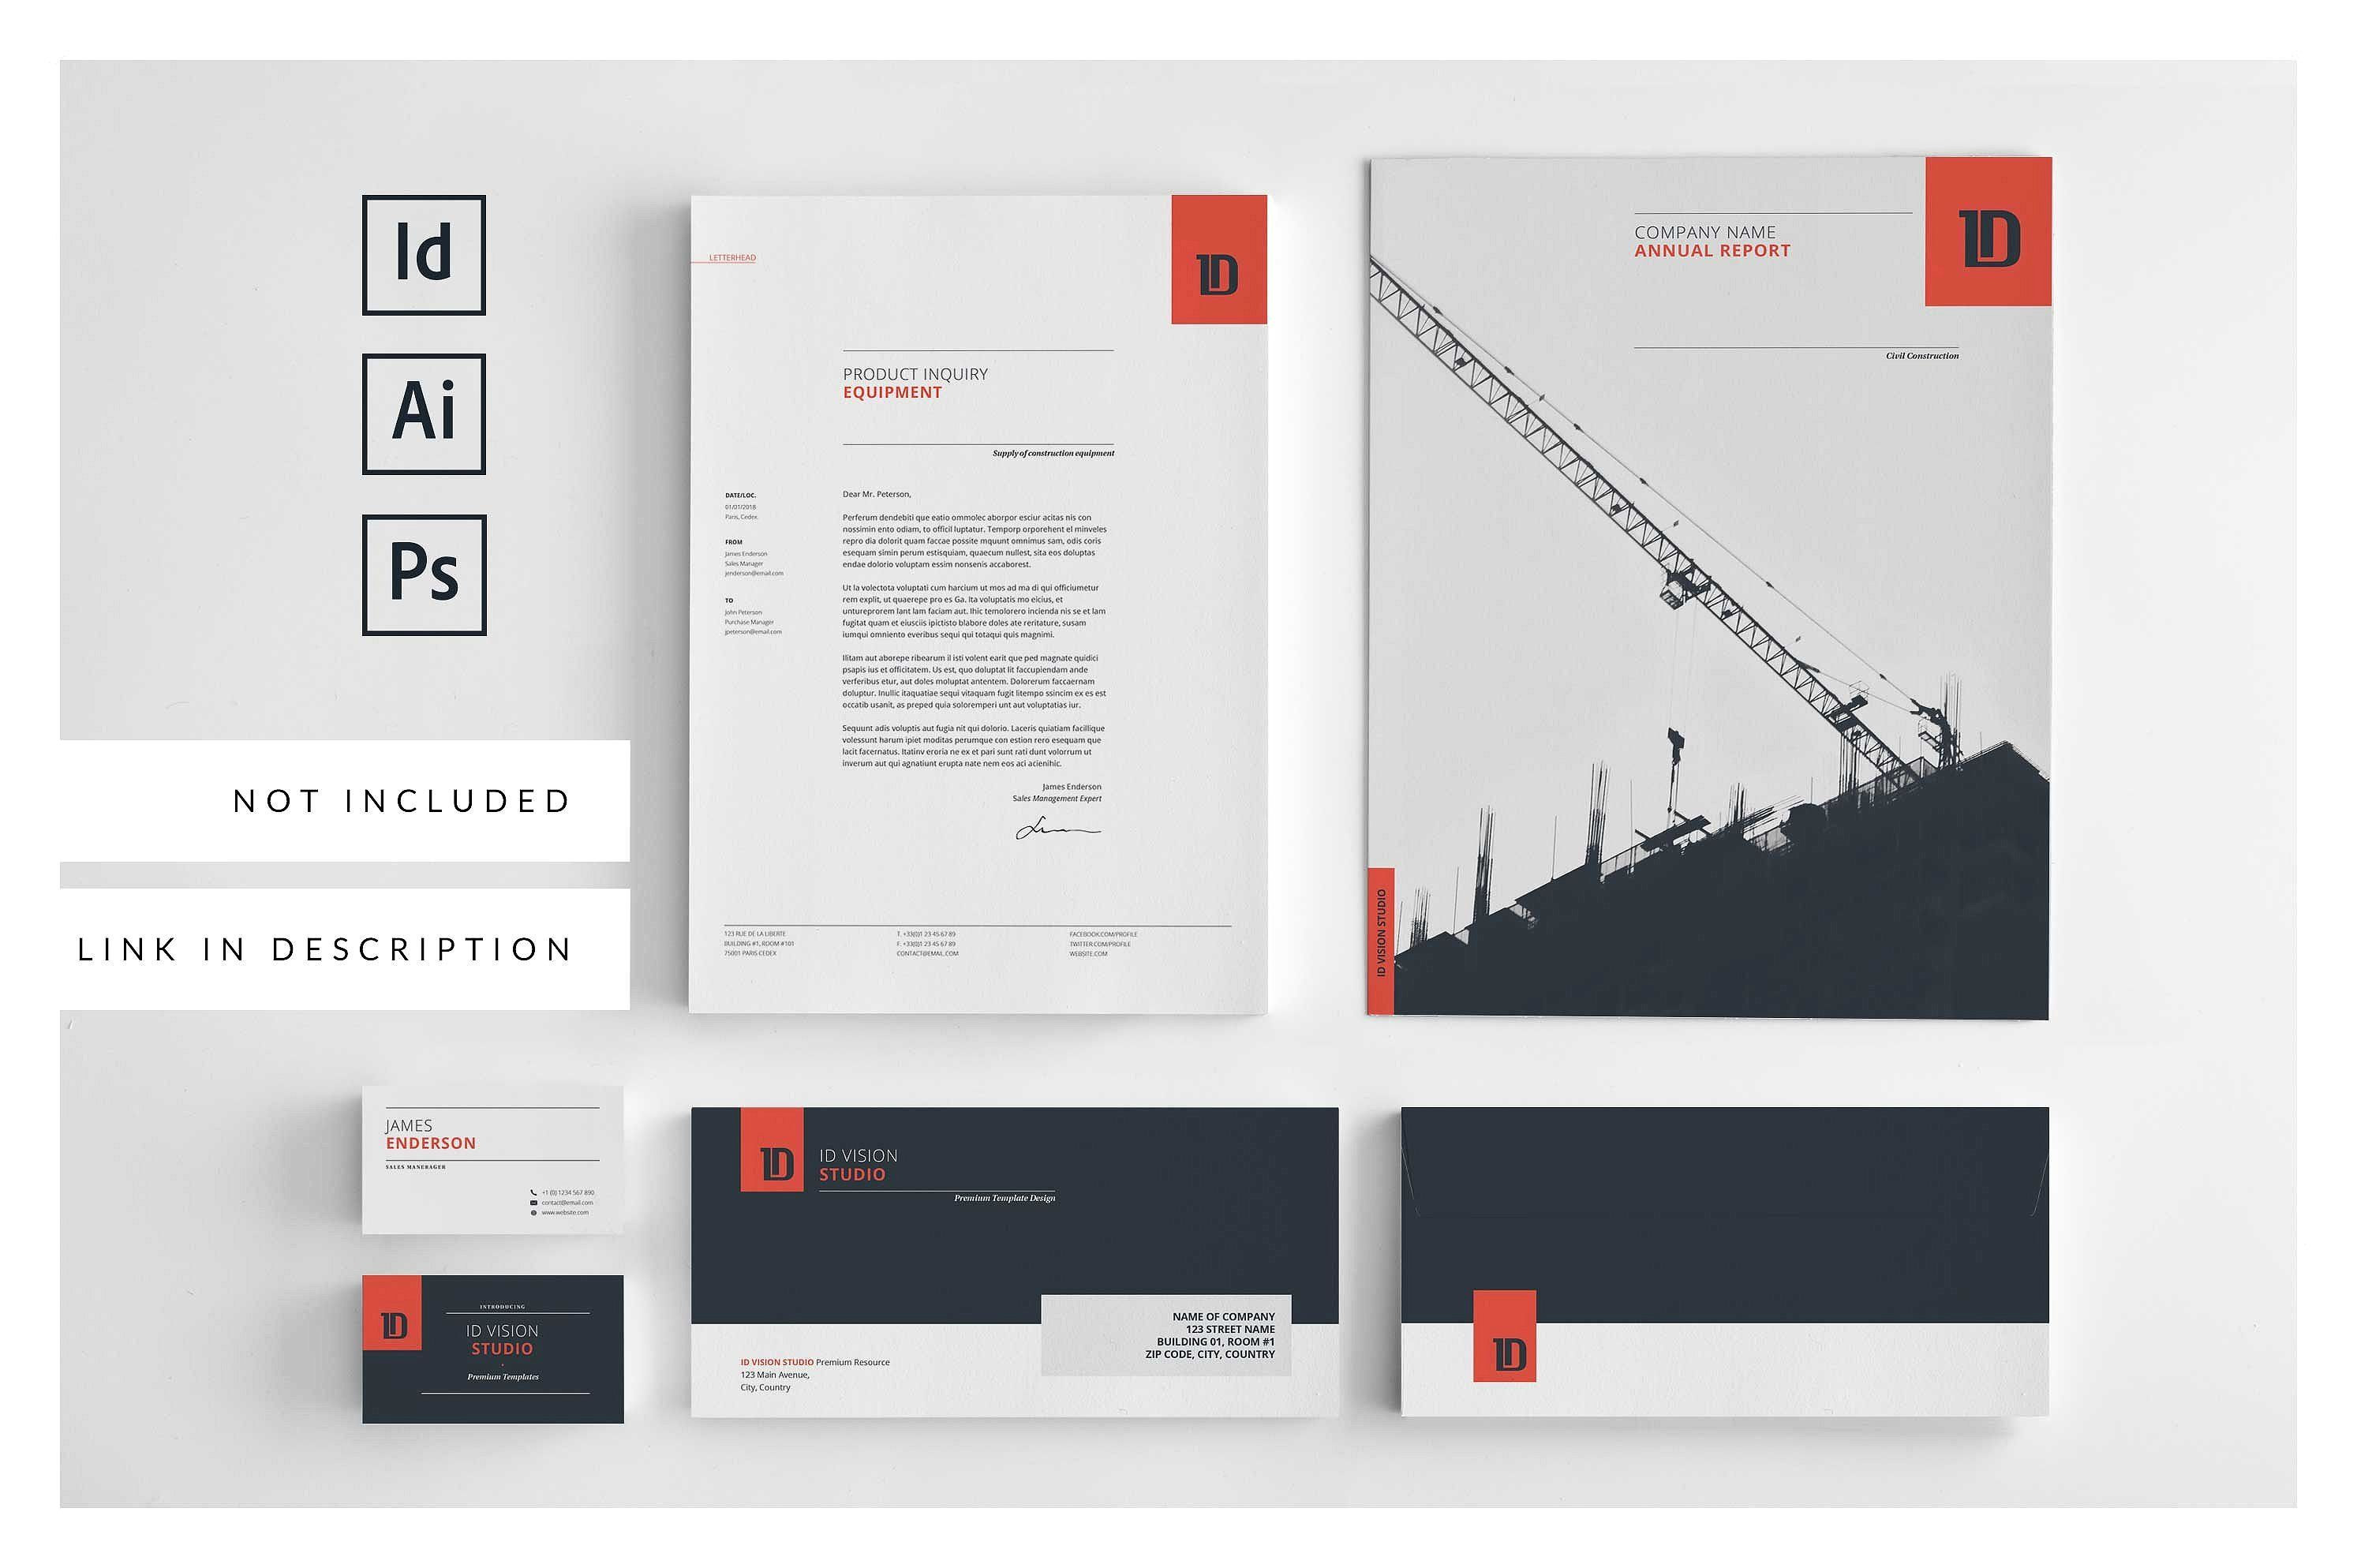 Annual Report Template  By Id Vision Studio On Creativemarket